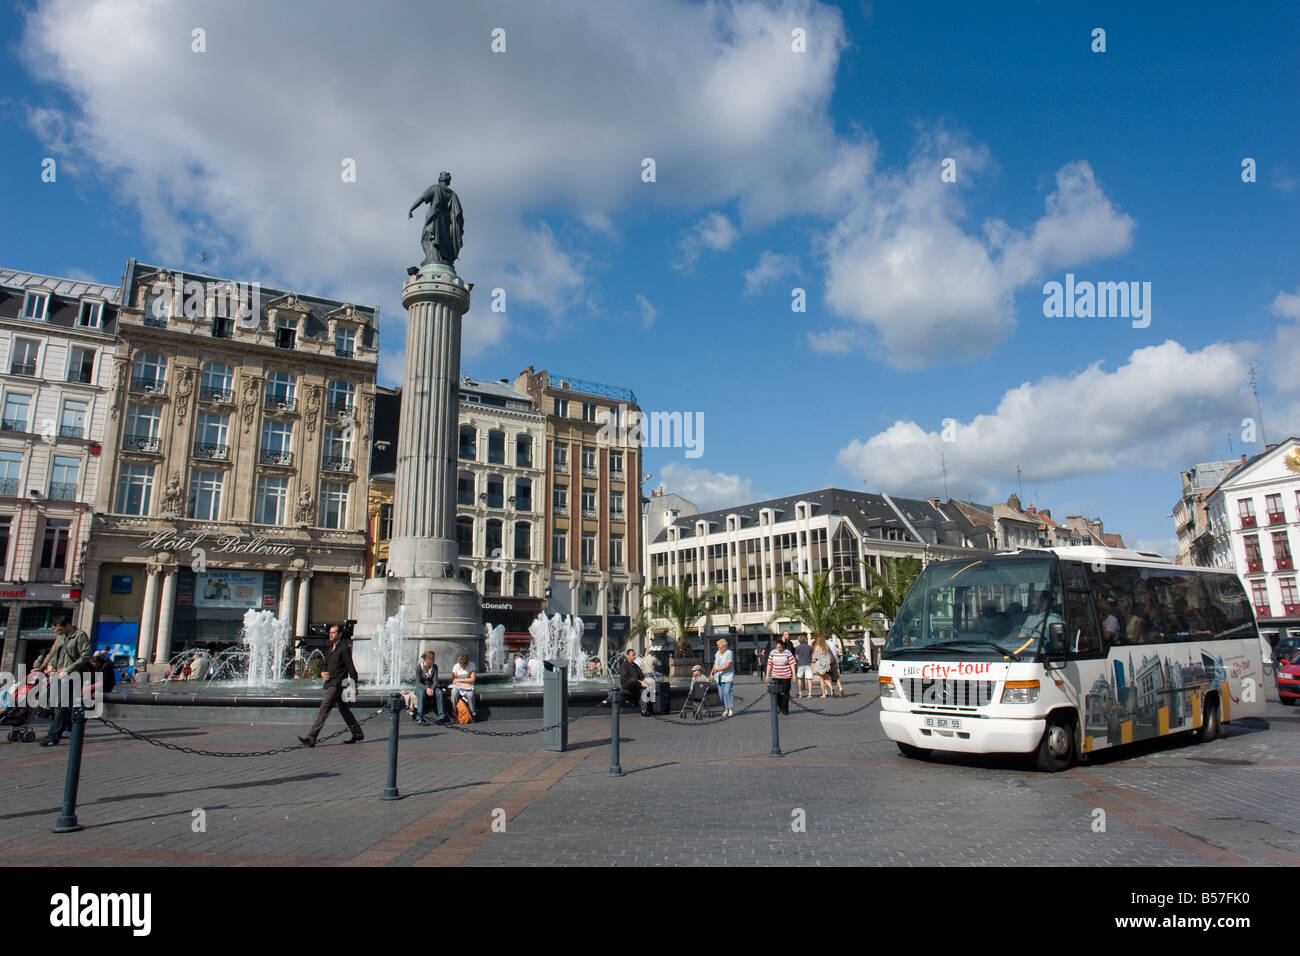 Main Place of Lille, france - Stock Image